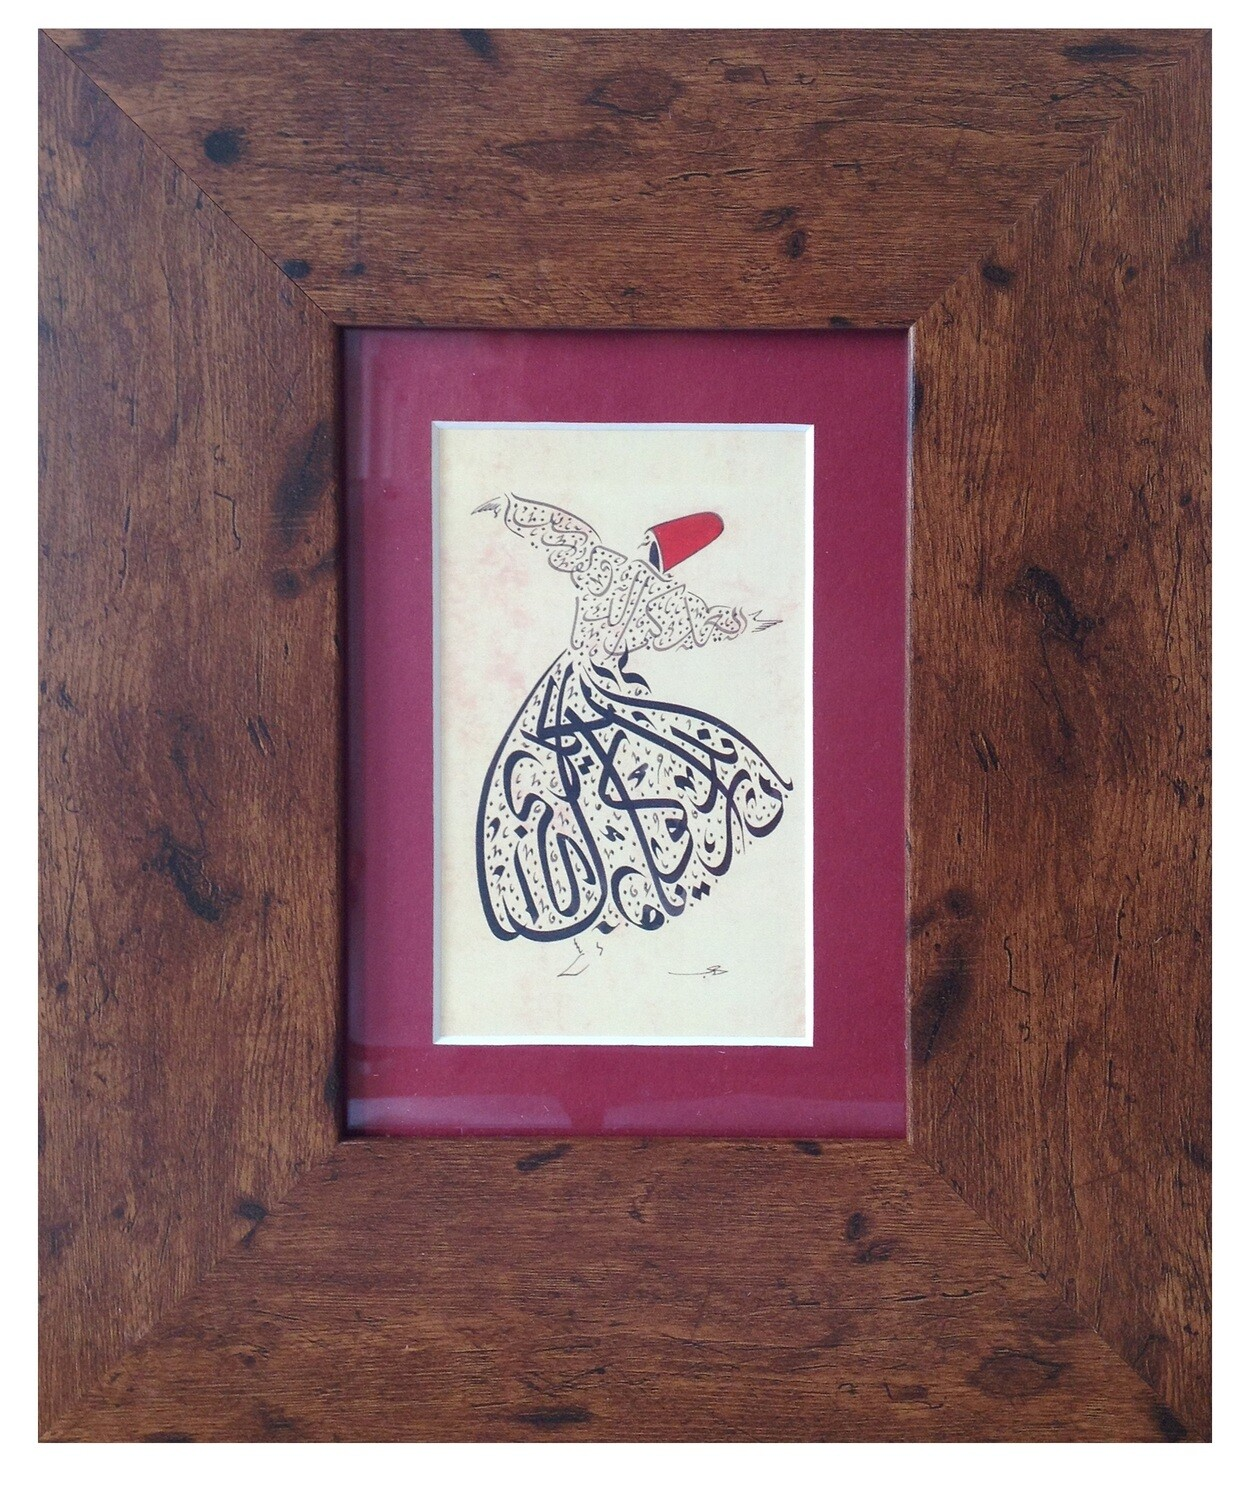 Whirling Dervish Red Rumi Poetry in Walnut Gloss Frame